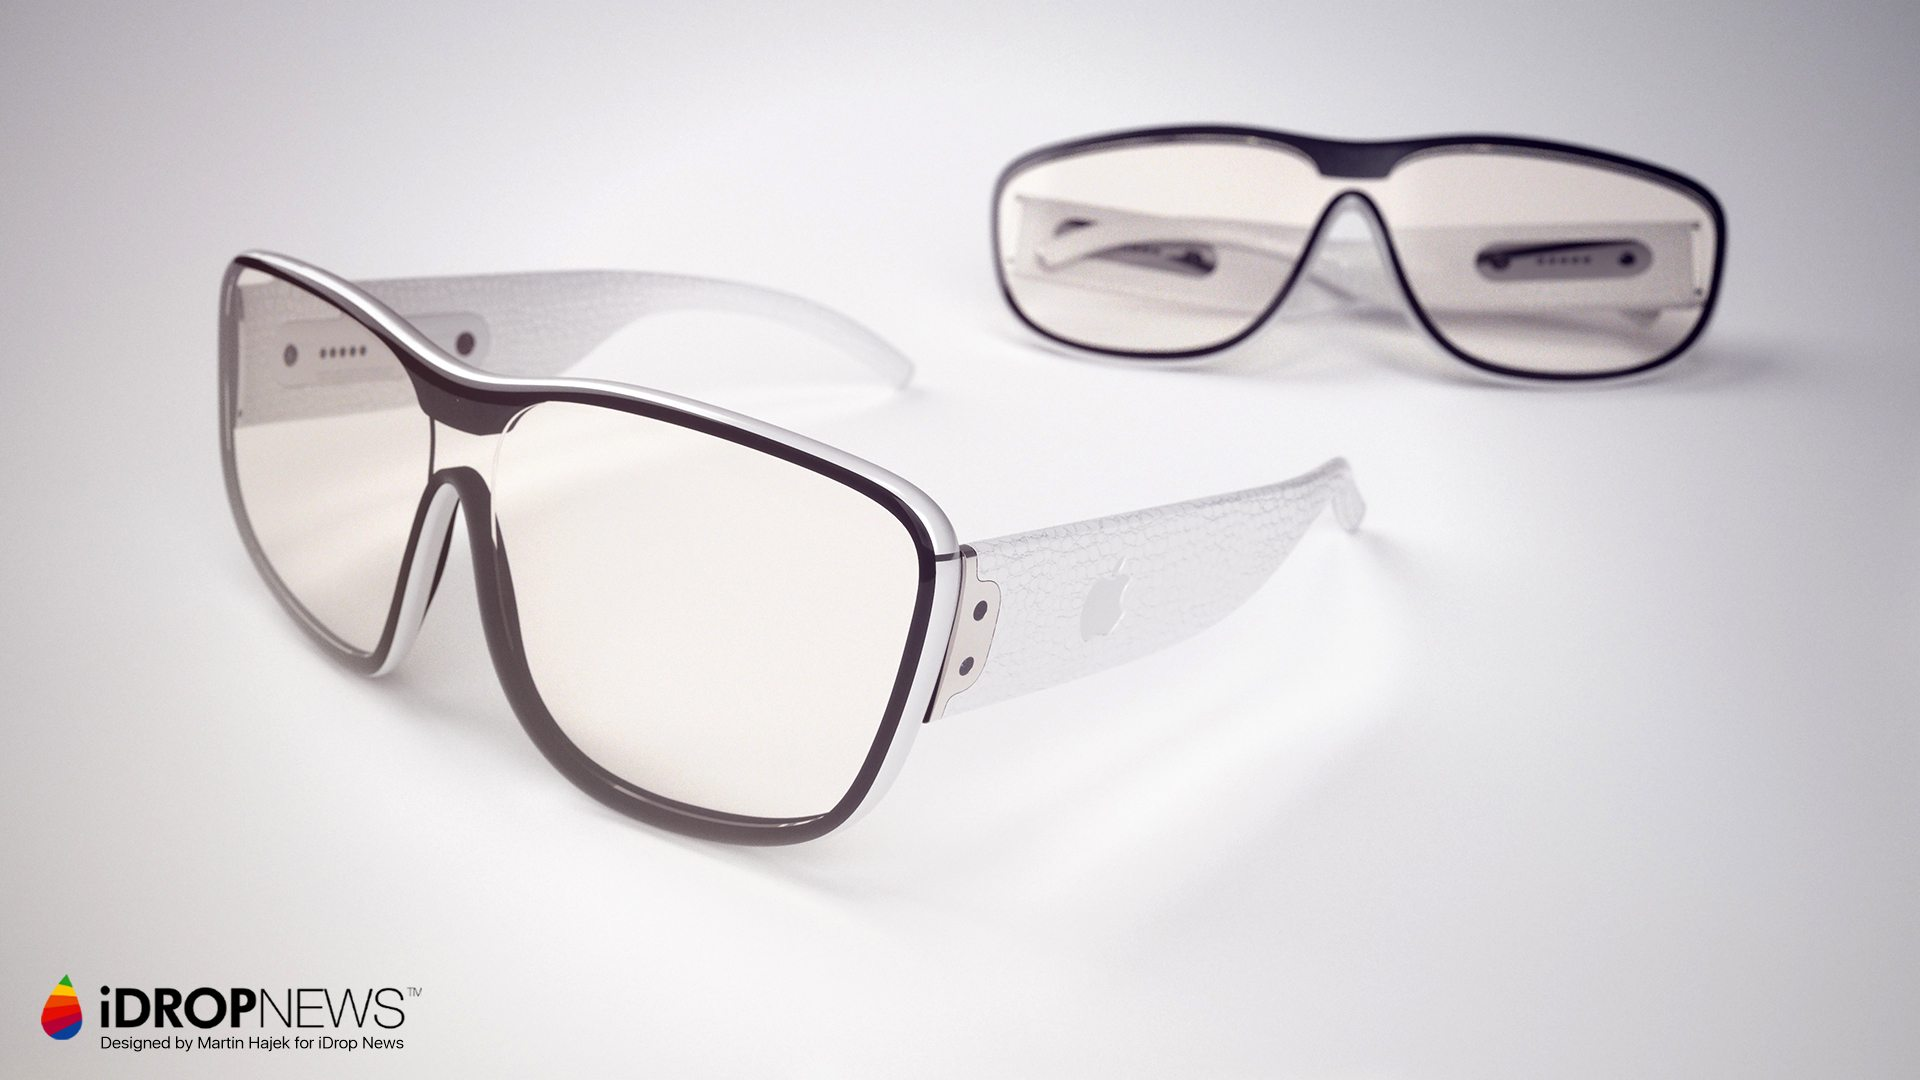 Apple-Glass-AR-Glasses-iDrop-News-x-Martin-Hajek-11jpg